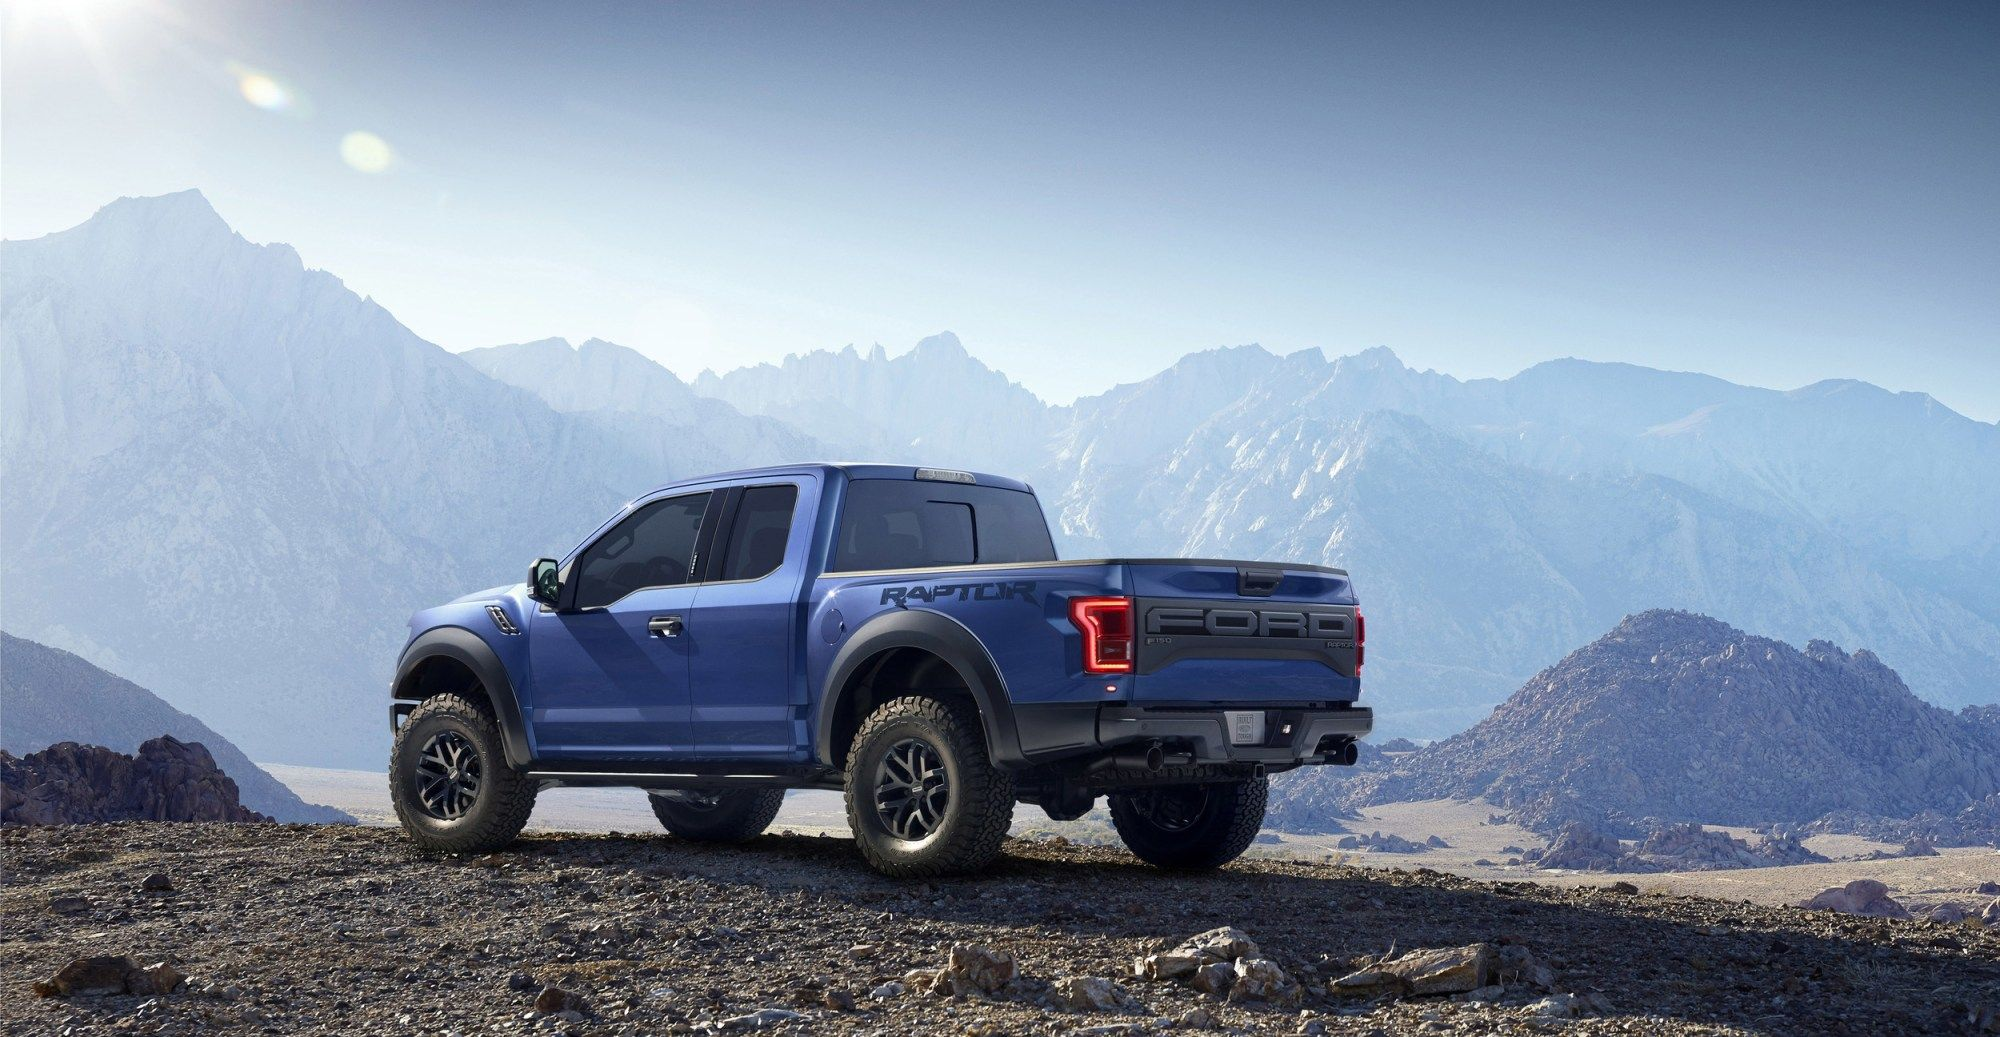 Ford Americas Truck Leader Today Introduced The All New Raptor Ultimate High Performance Off Road Pickup In Companys Lineup